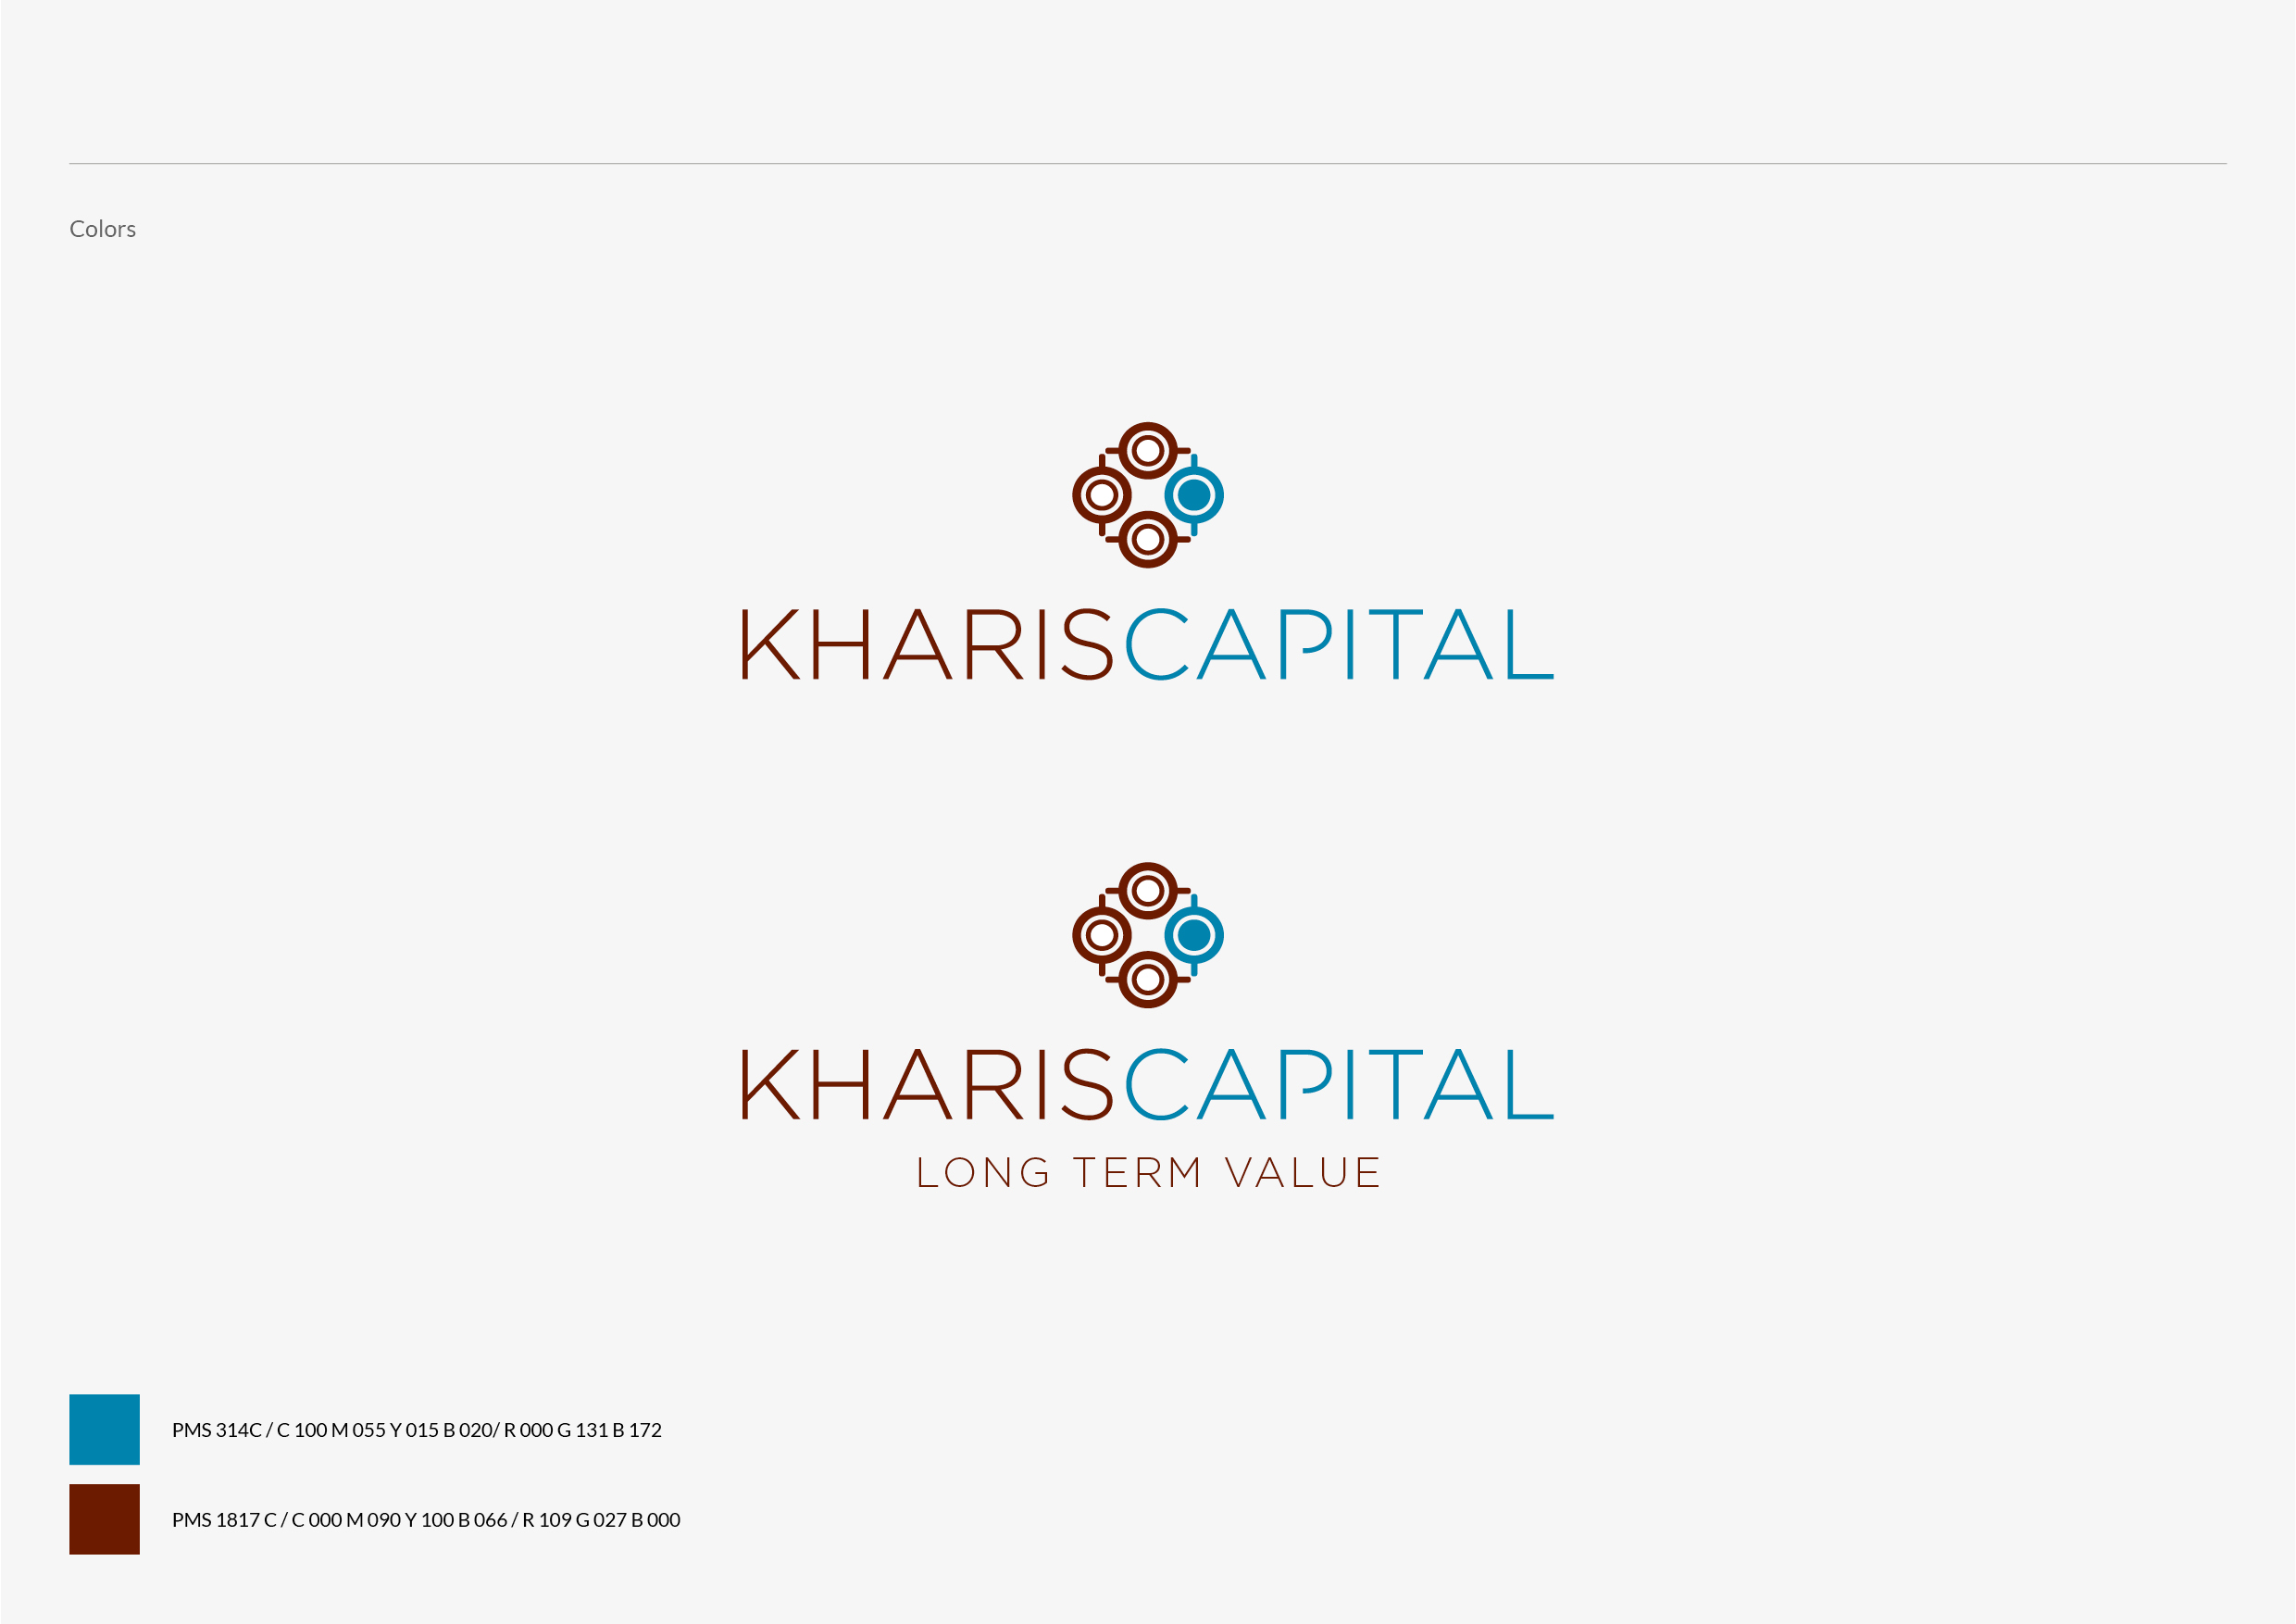 141124 KHARIS CAPITAL v01 construction grey7